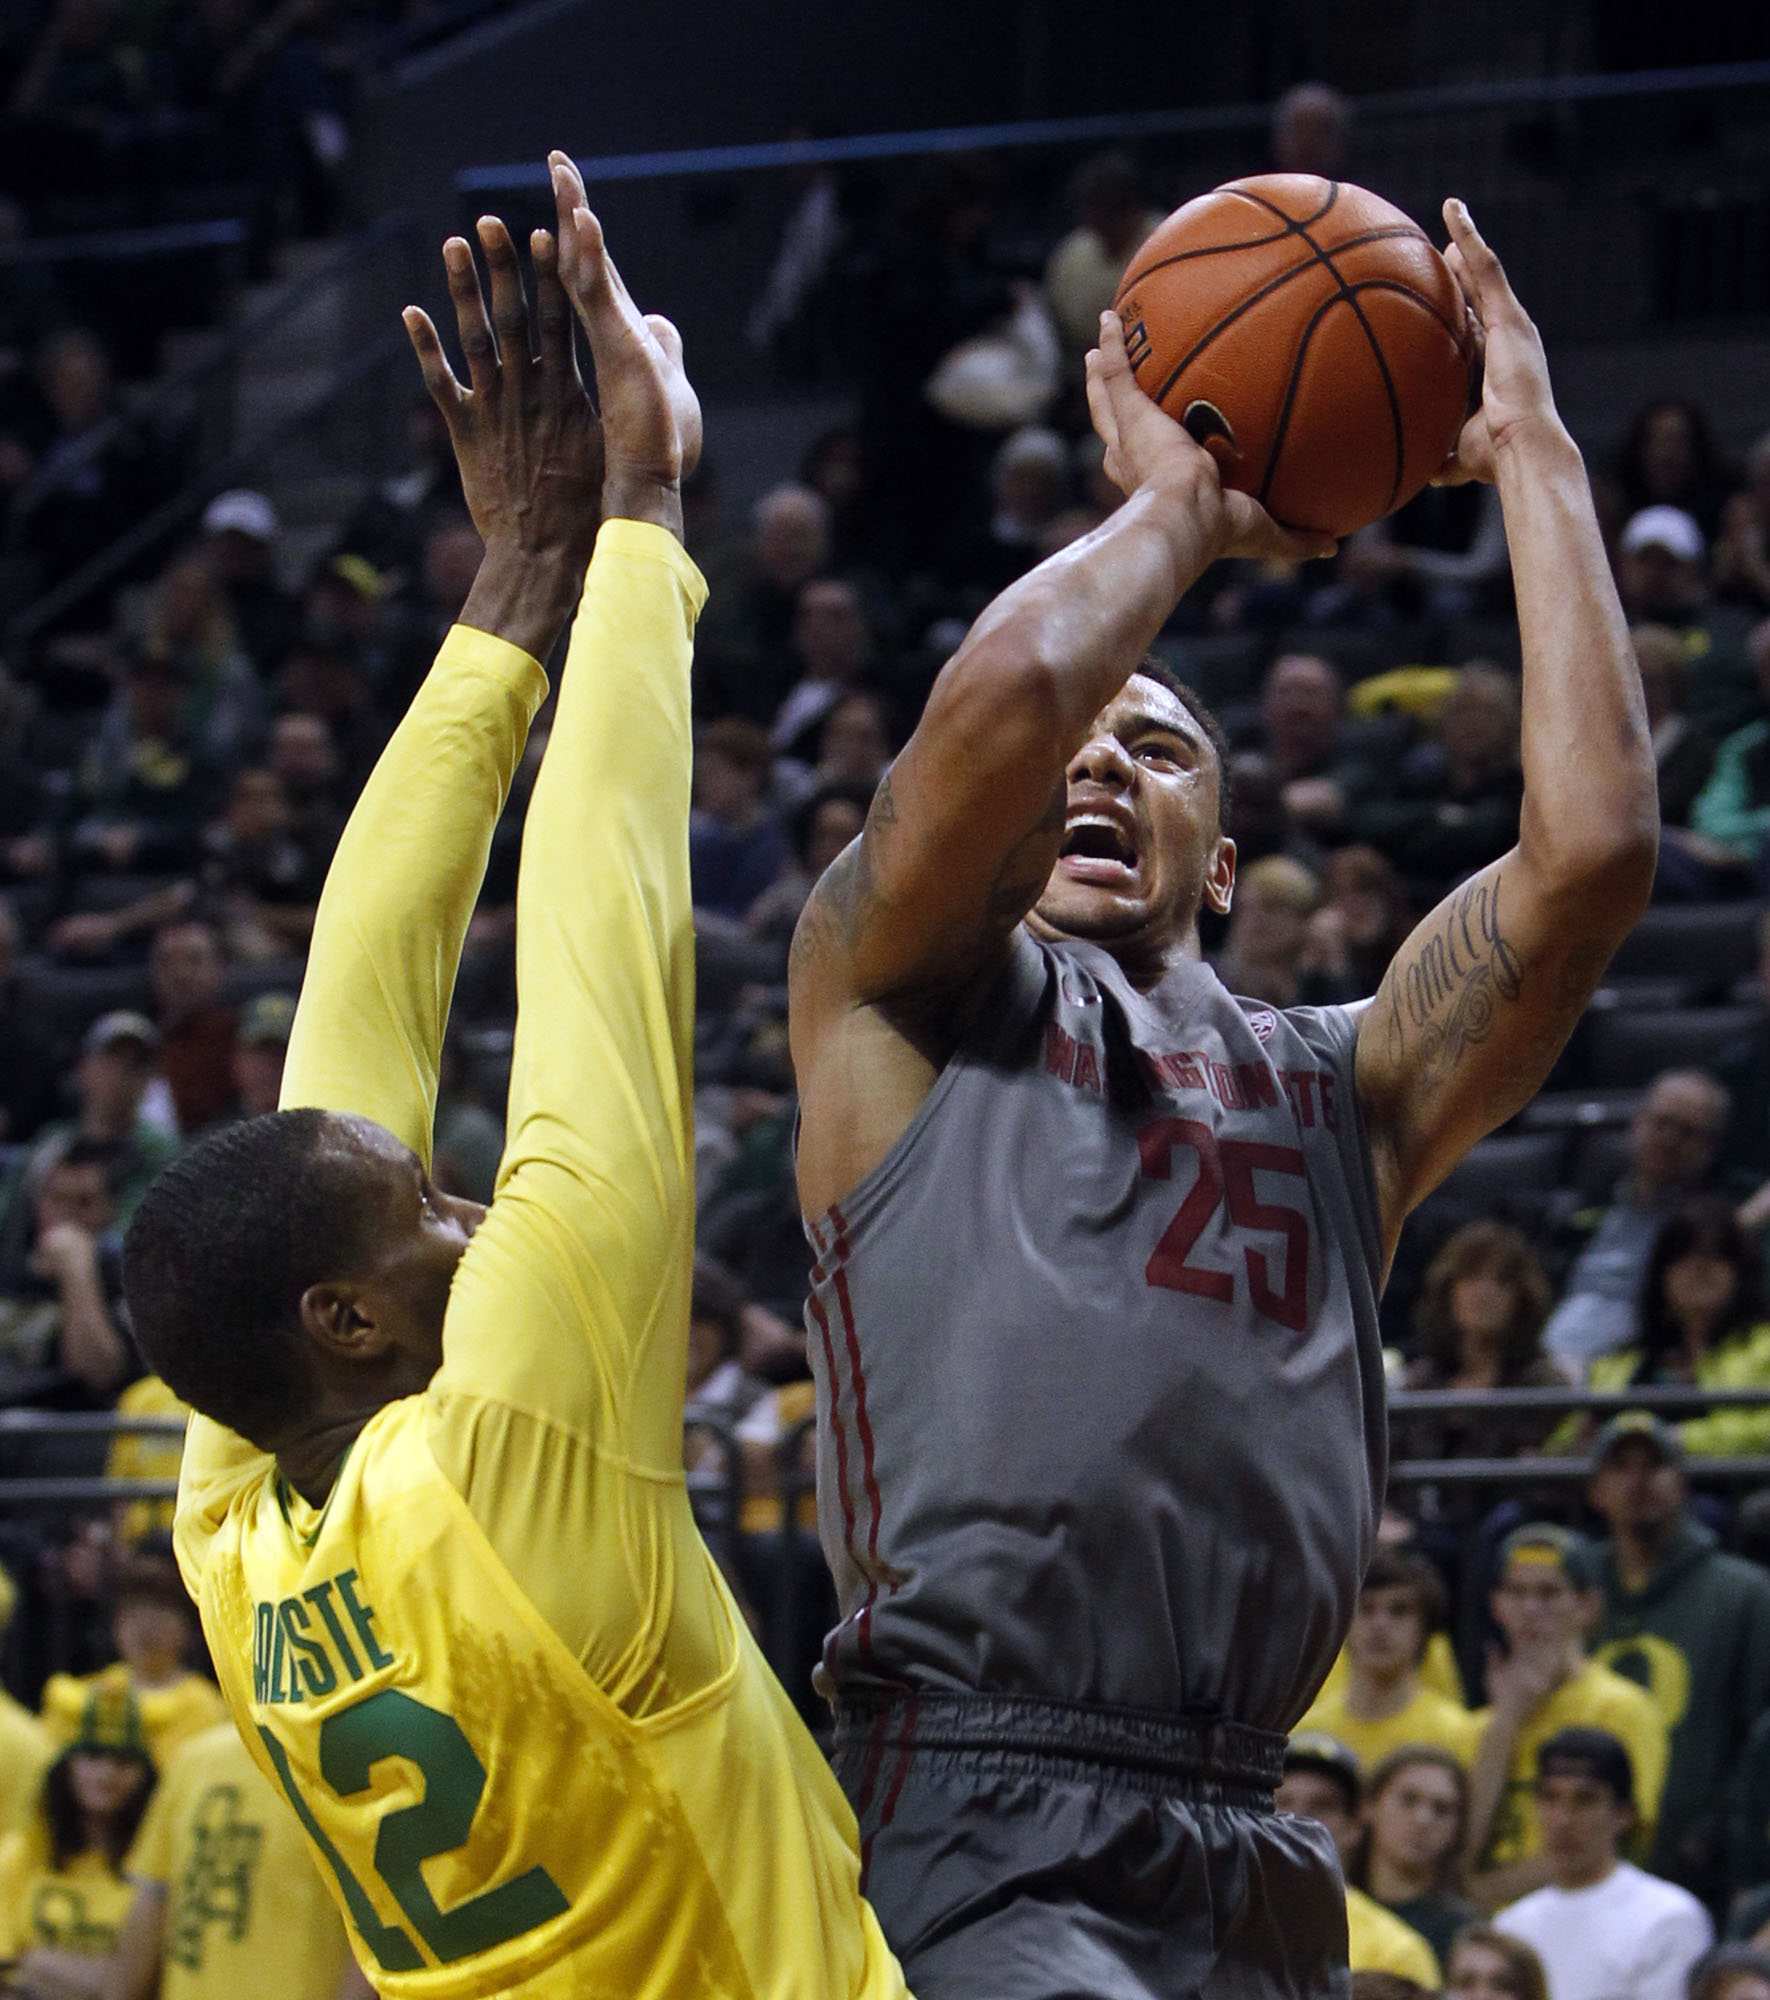 Washington State's DaVonte Lacy, right, shoots past Oregon's Jason Calliste during the second half of an NCAA college basketball game in Eugene, Ore., Sunday, Feb. 23, 2014